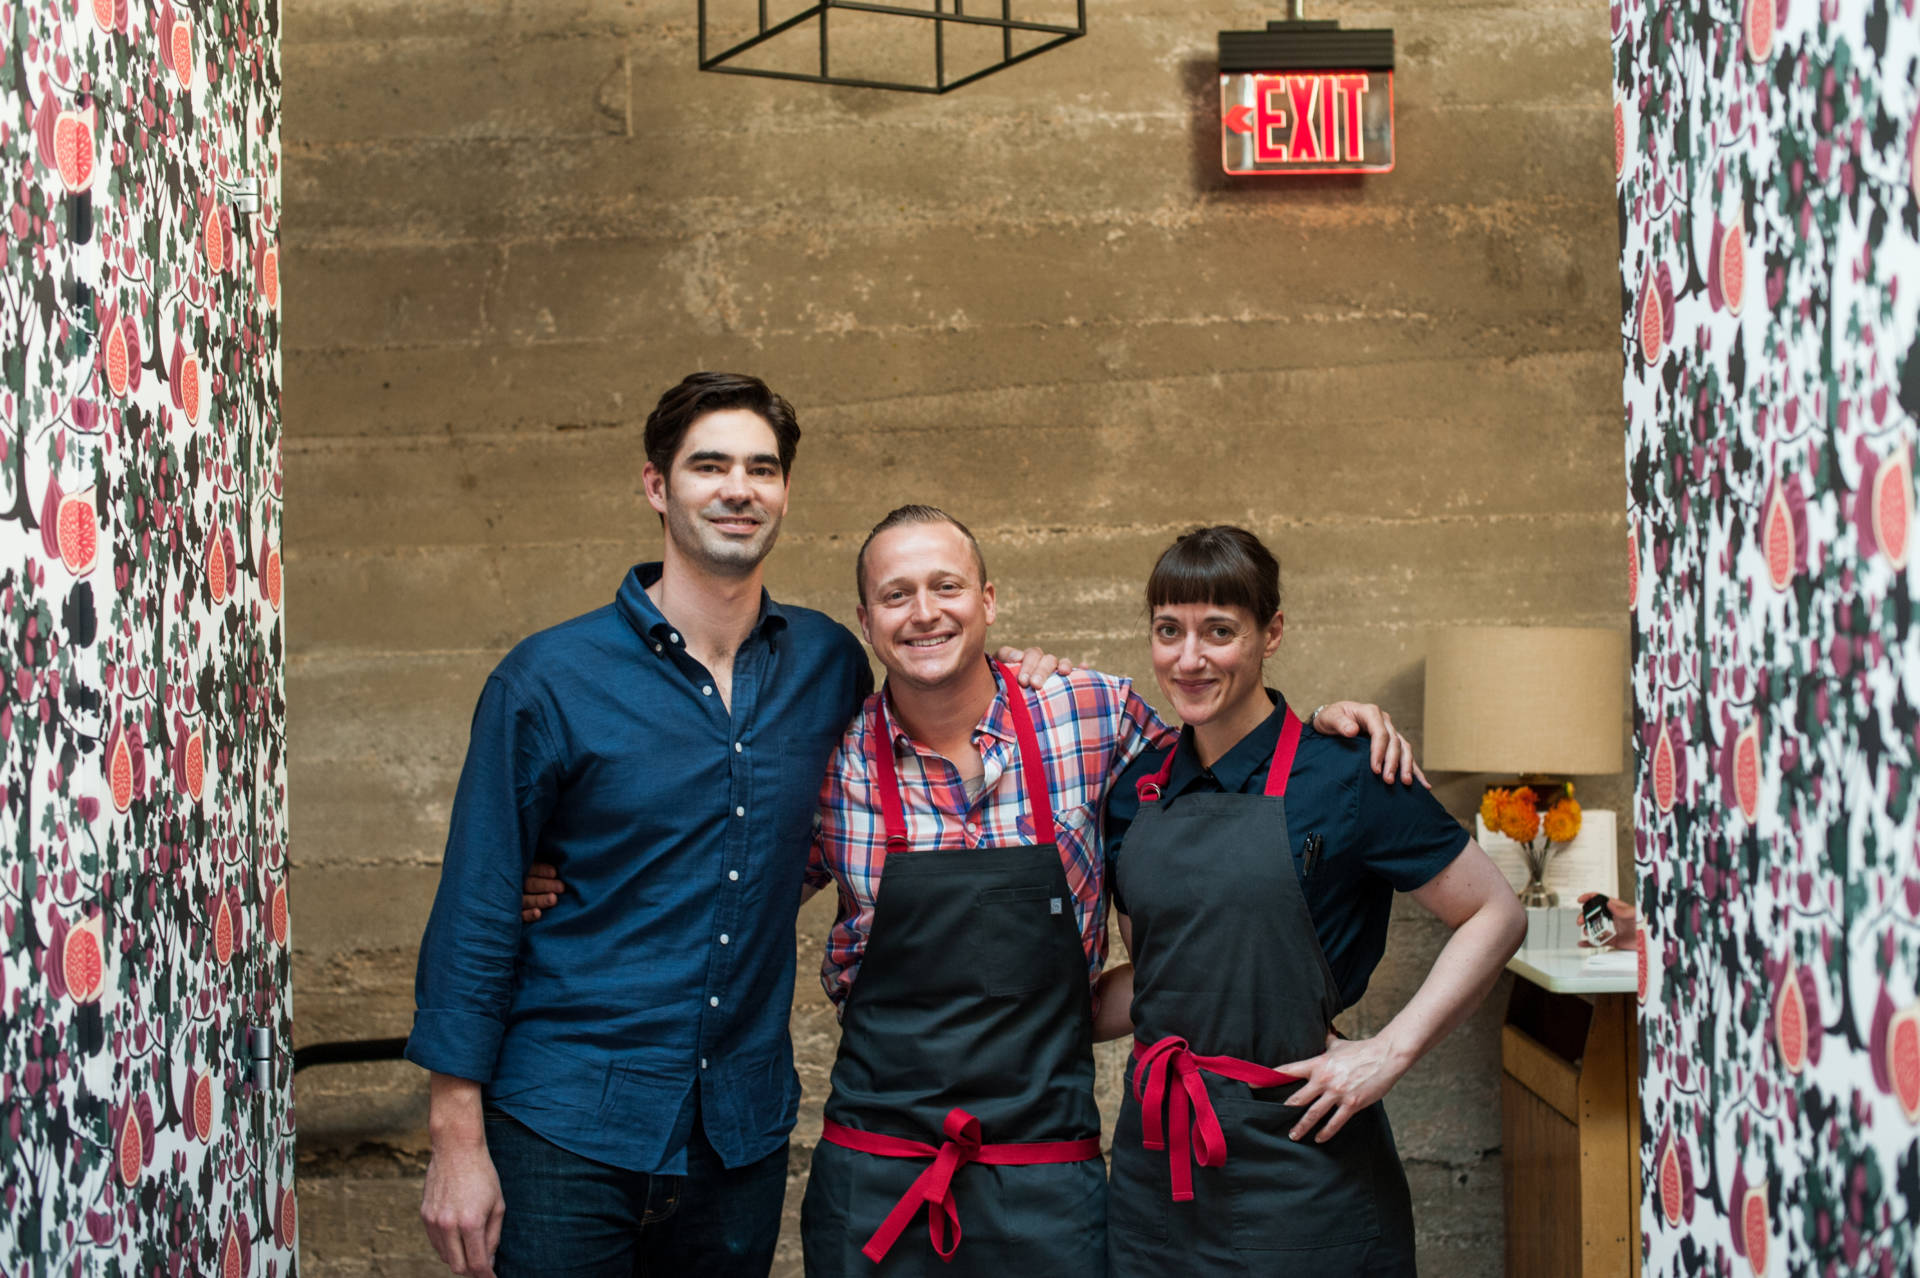 Angela Pinkerton with her restaurant partners, David Nayfeld and Matthew Brewer.